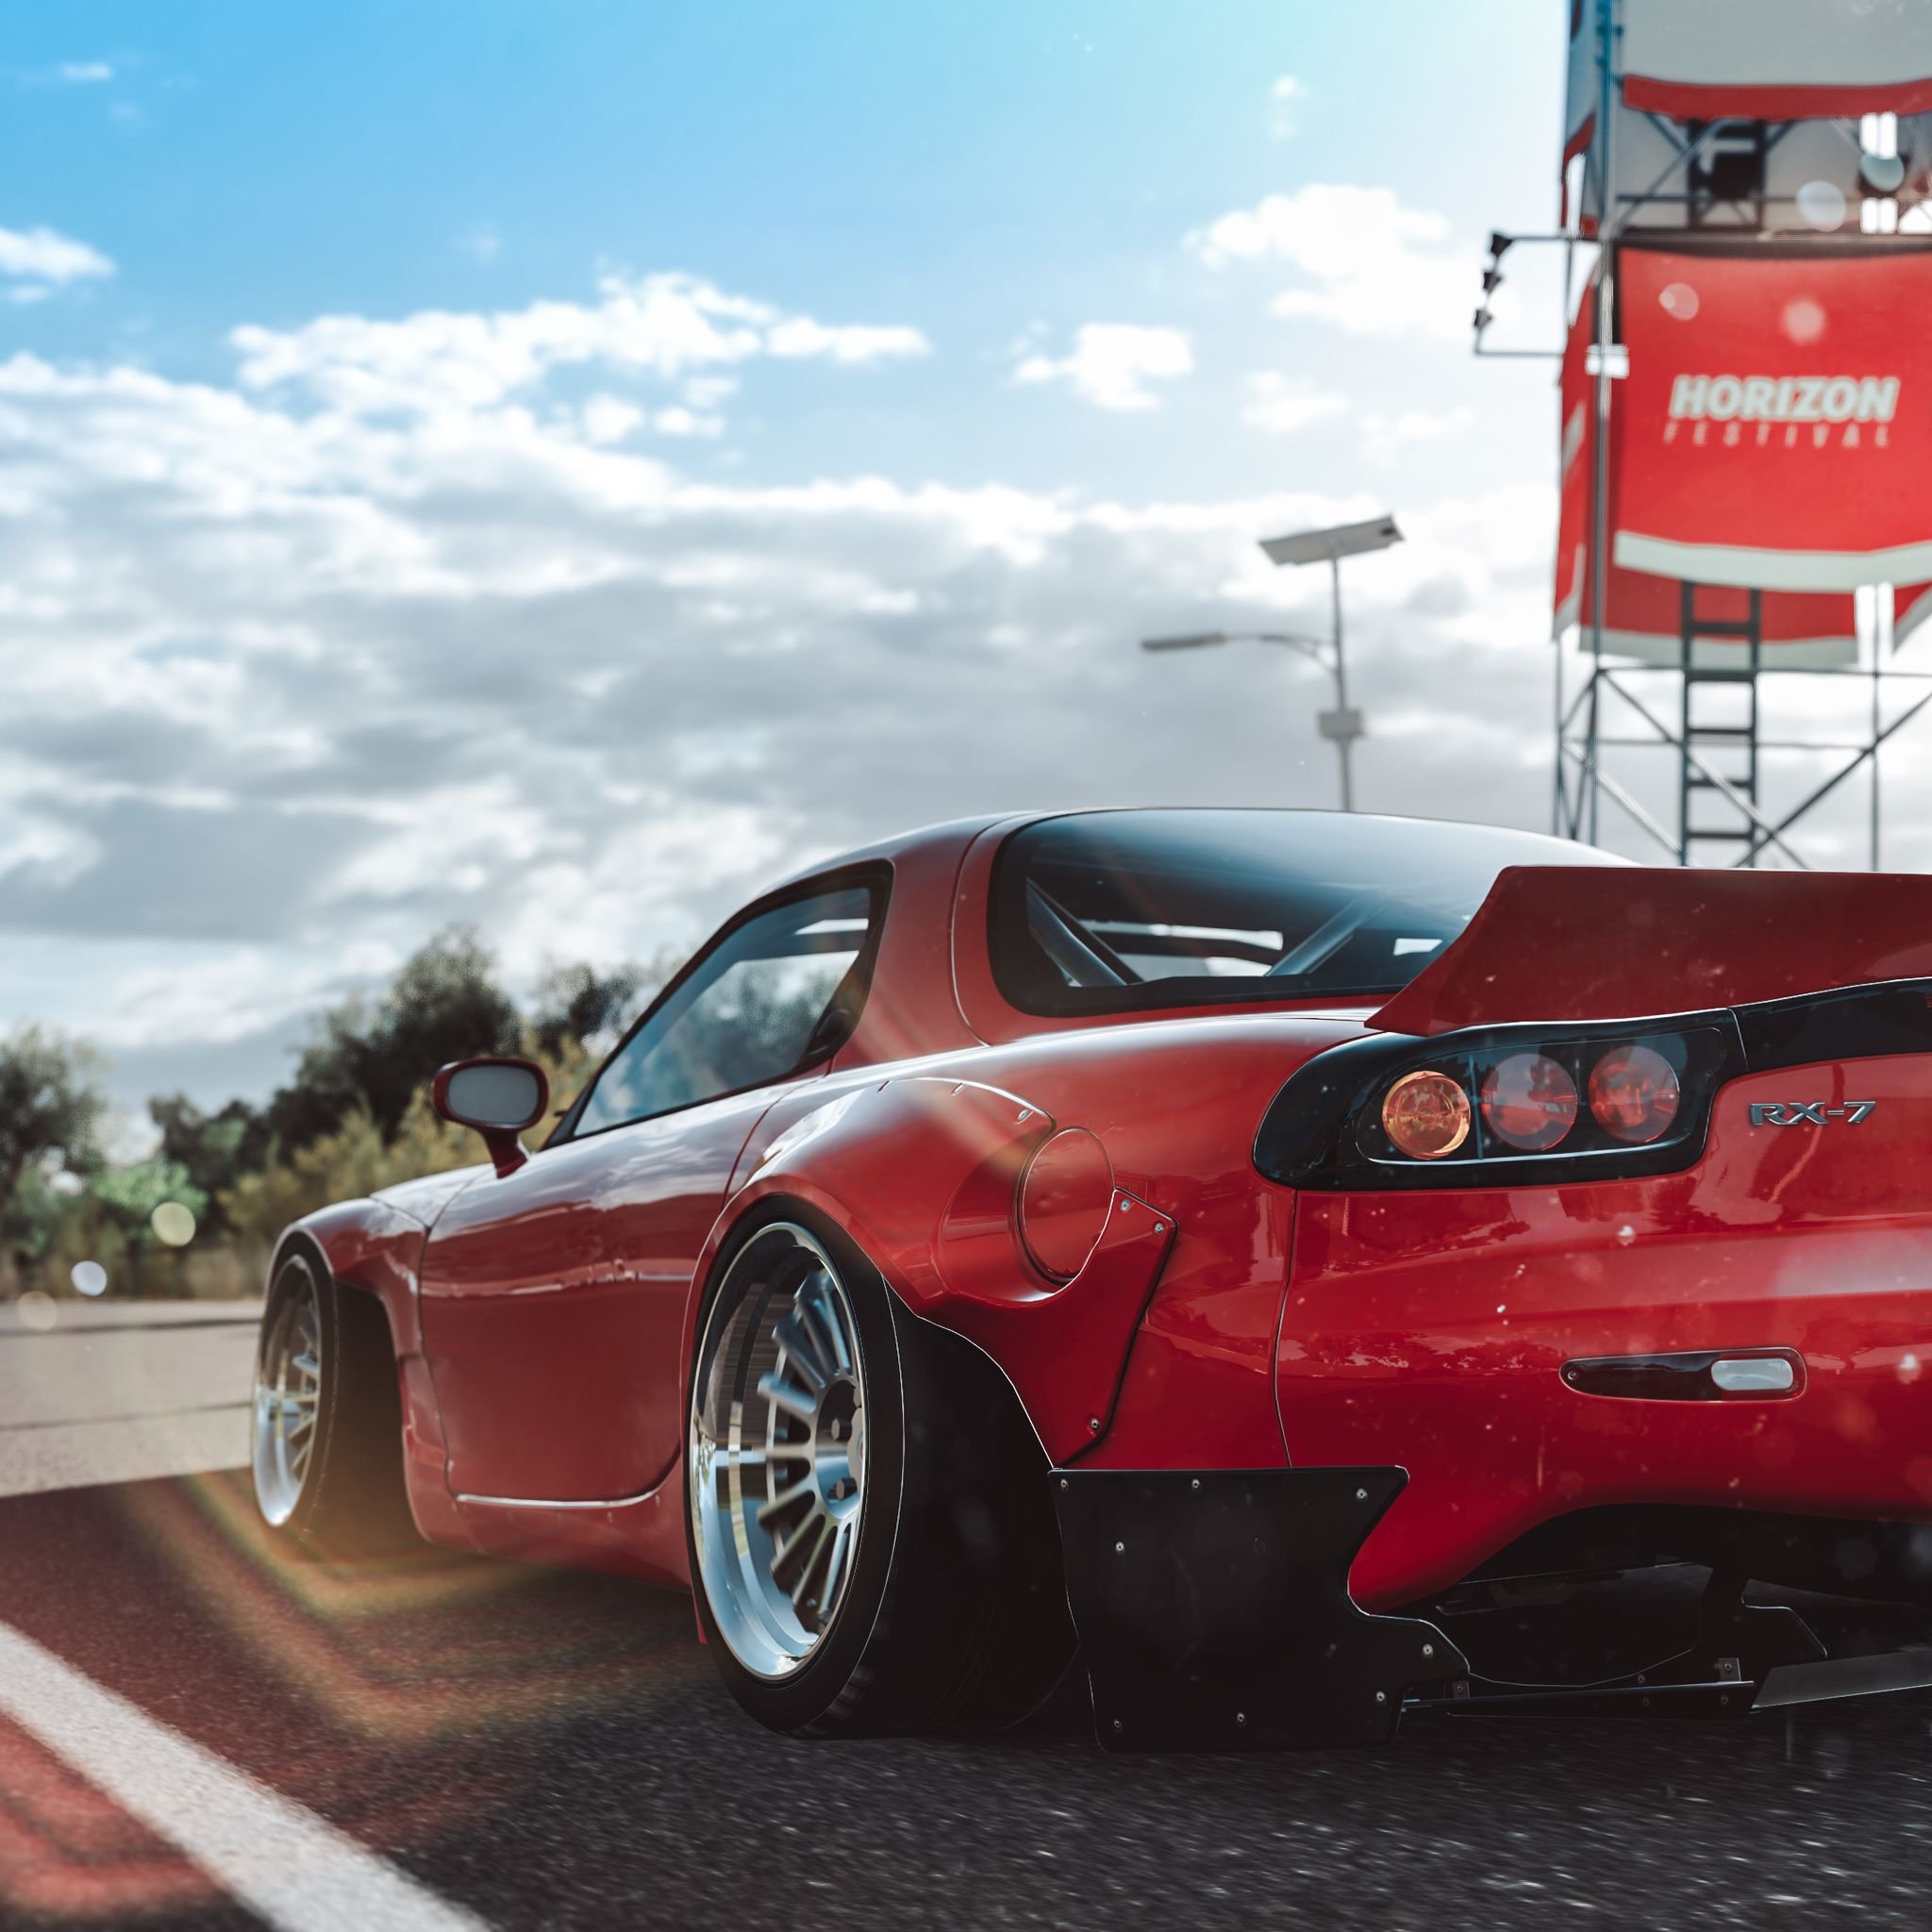 Top Free Rx7 4K Backgrounds